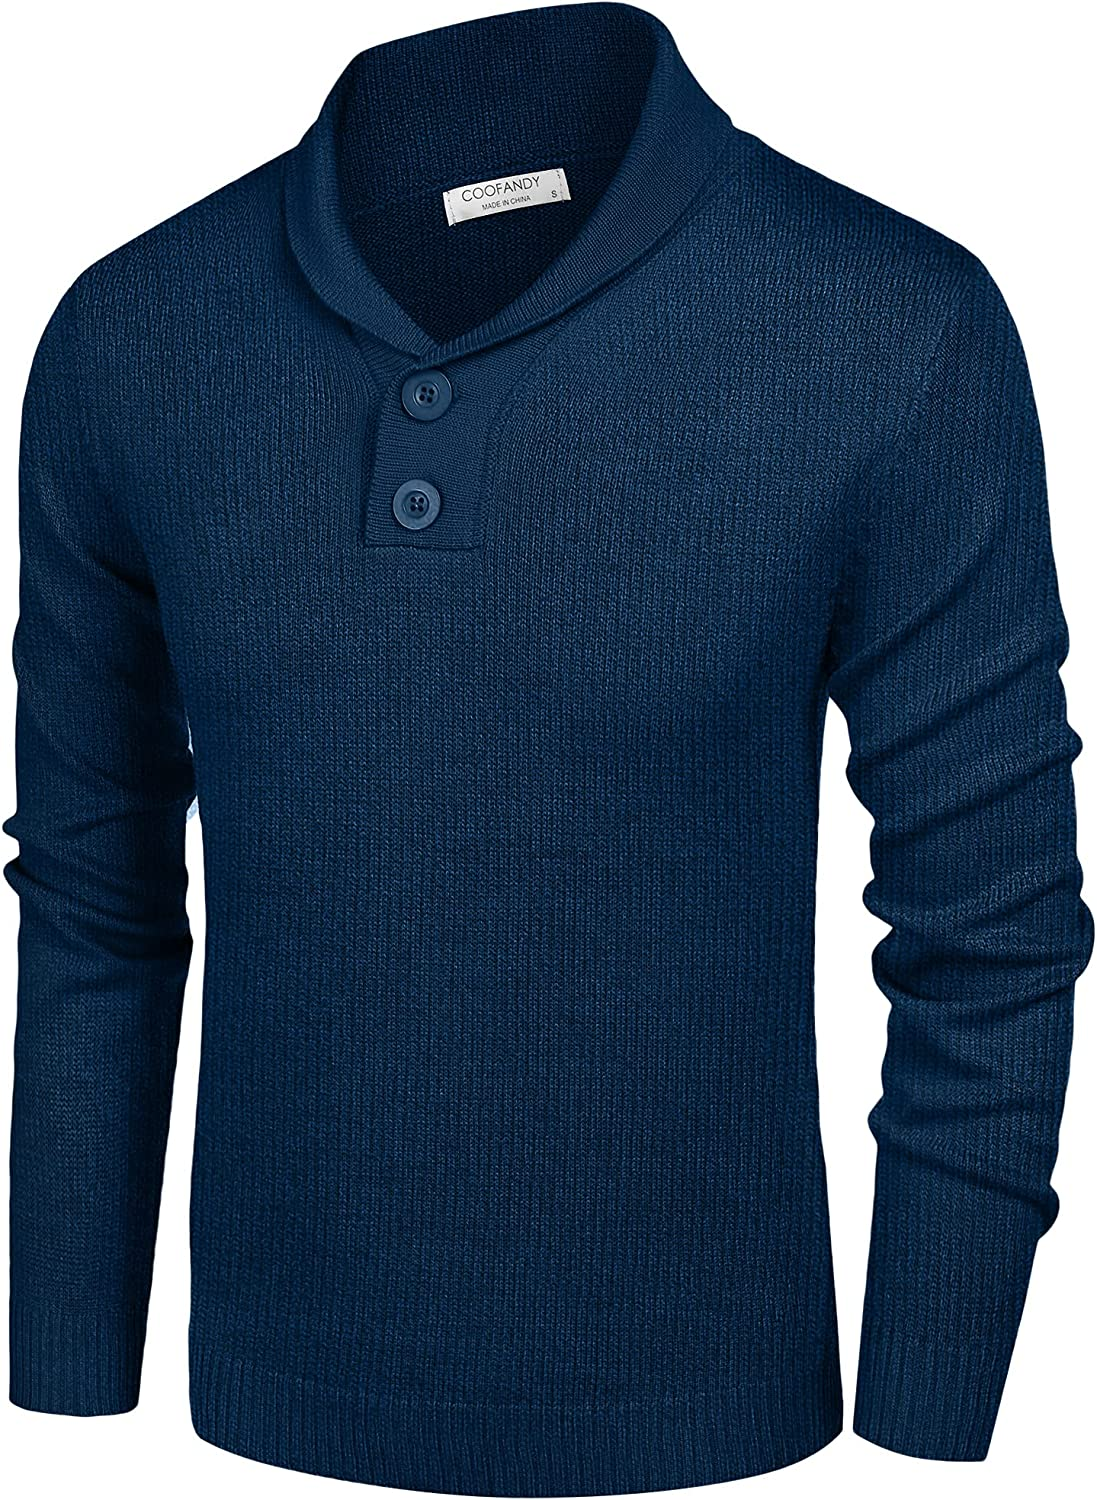 COOFANDY Men's Fashion Shawl Collar Pullover Casual Long Sleeve Knitted Sweater